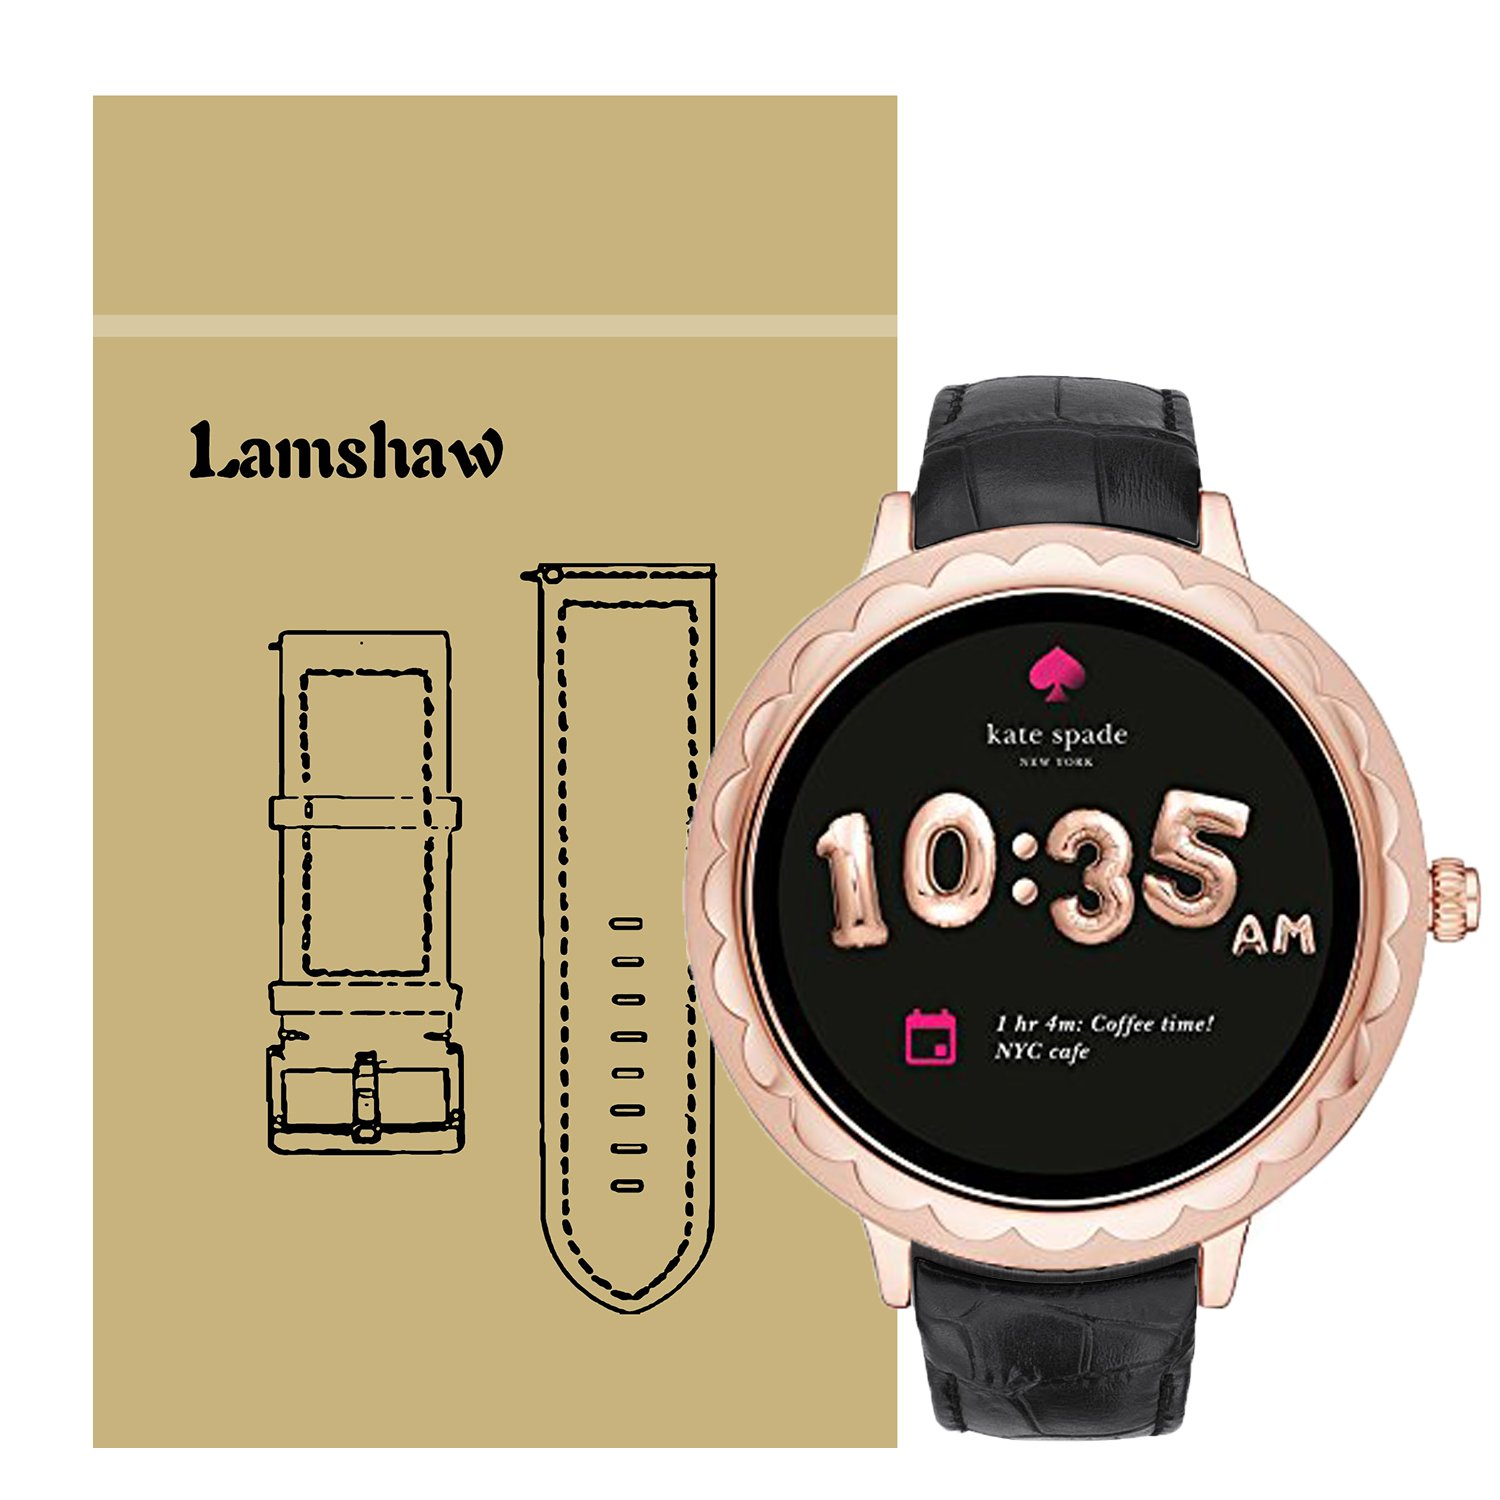 For Kate Spade Scallop Band, Lamshaw Leather Crocodile Pattern Replacement Band Classy Strap for Kate Spade Scallop Touchscreen Smartwatch (Black)